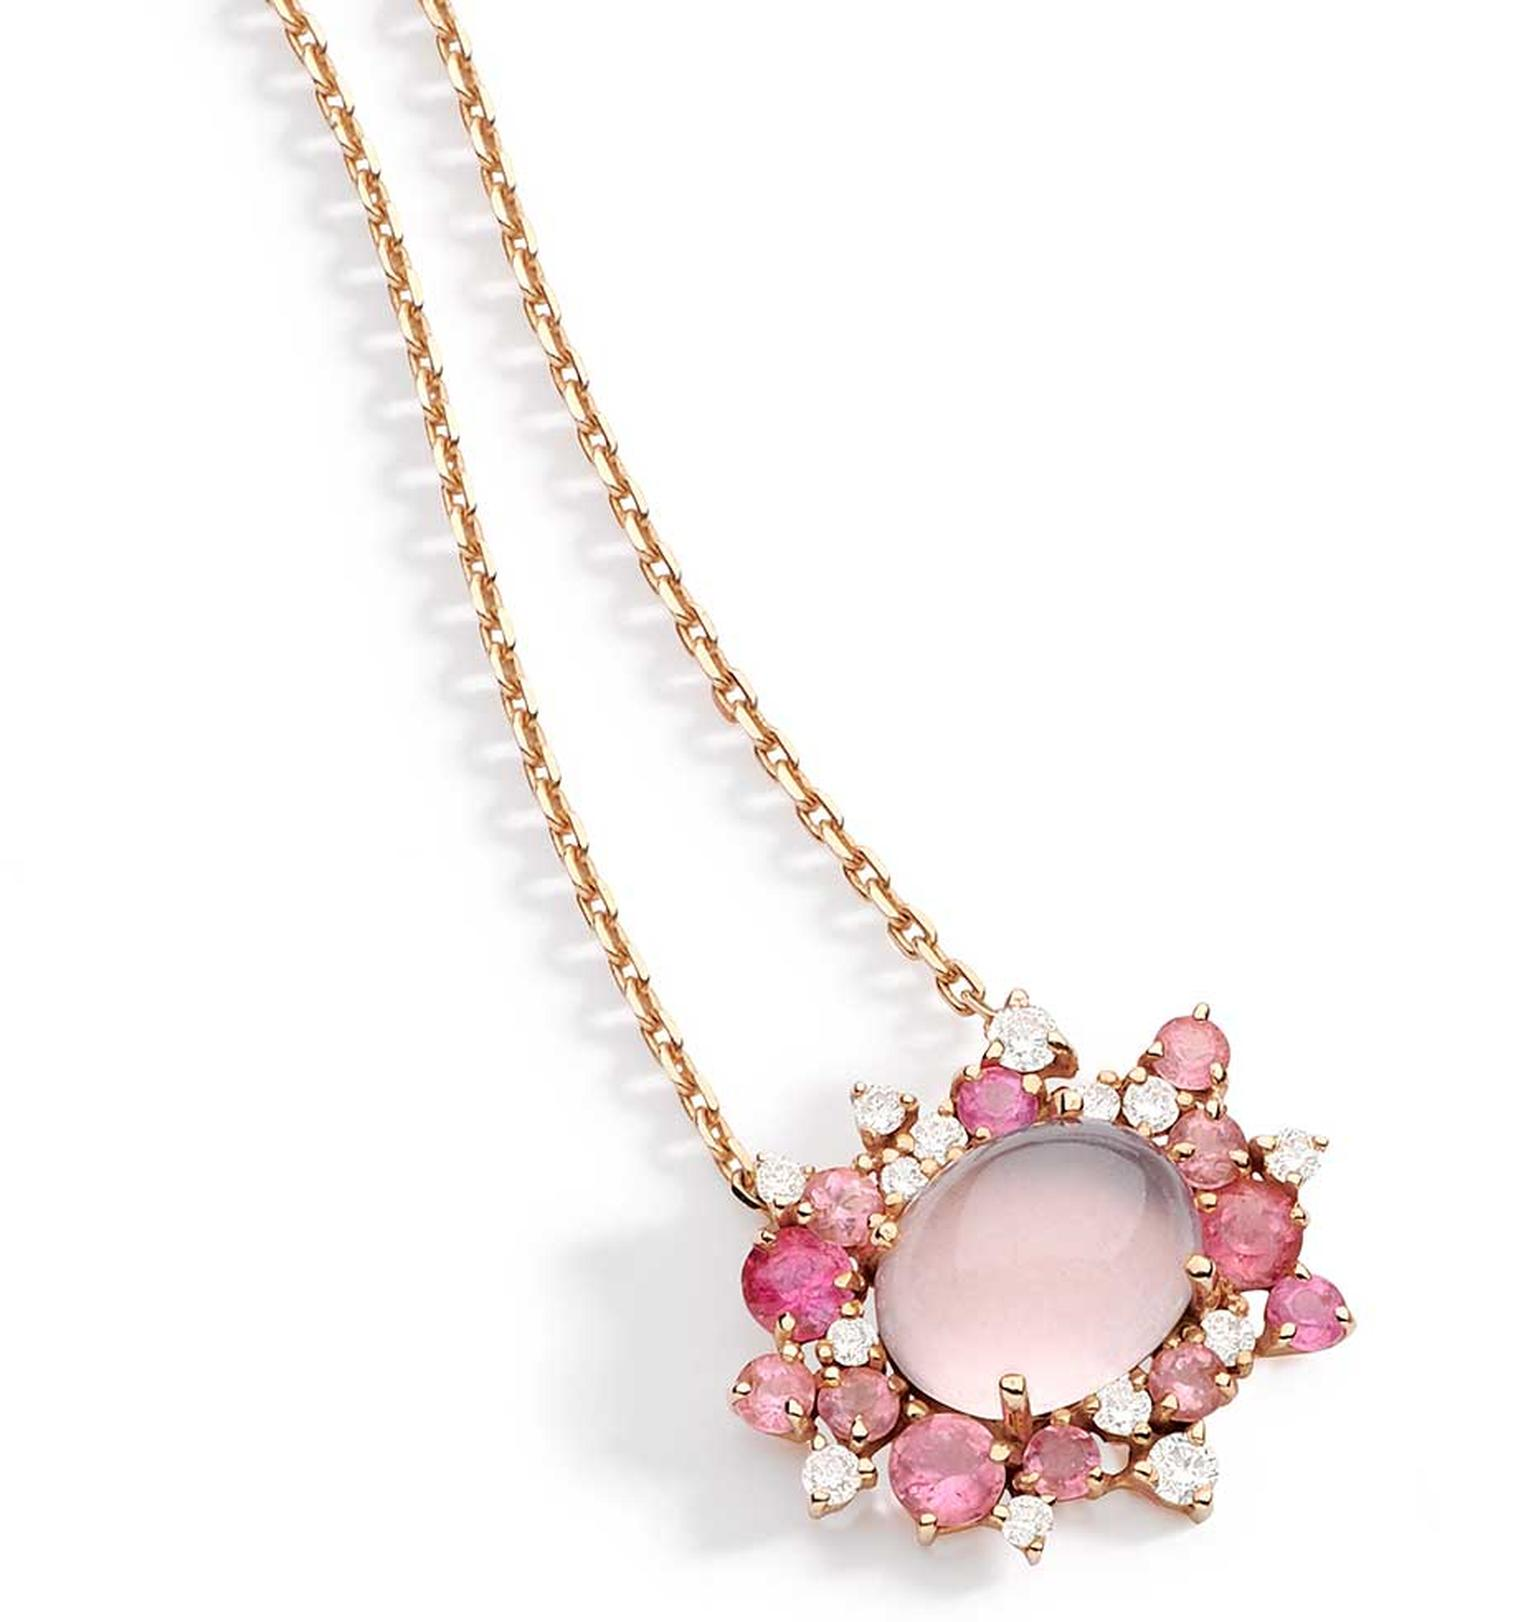 Brumani Baobab Rose collection necklace in rose gold with round diamonds, pink quartz and pink tourmaline